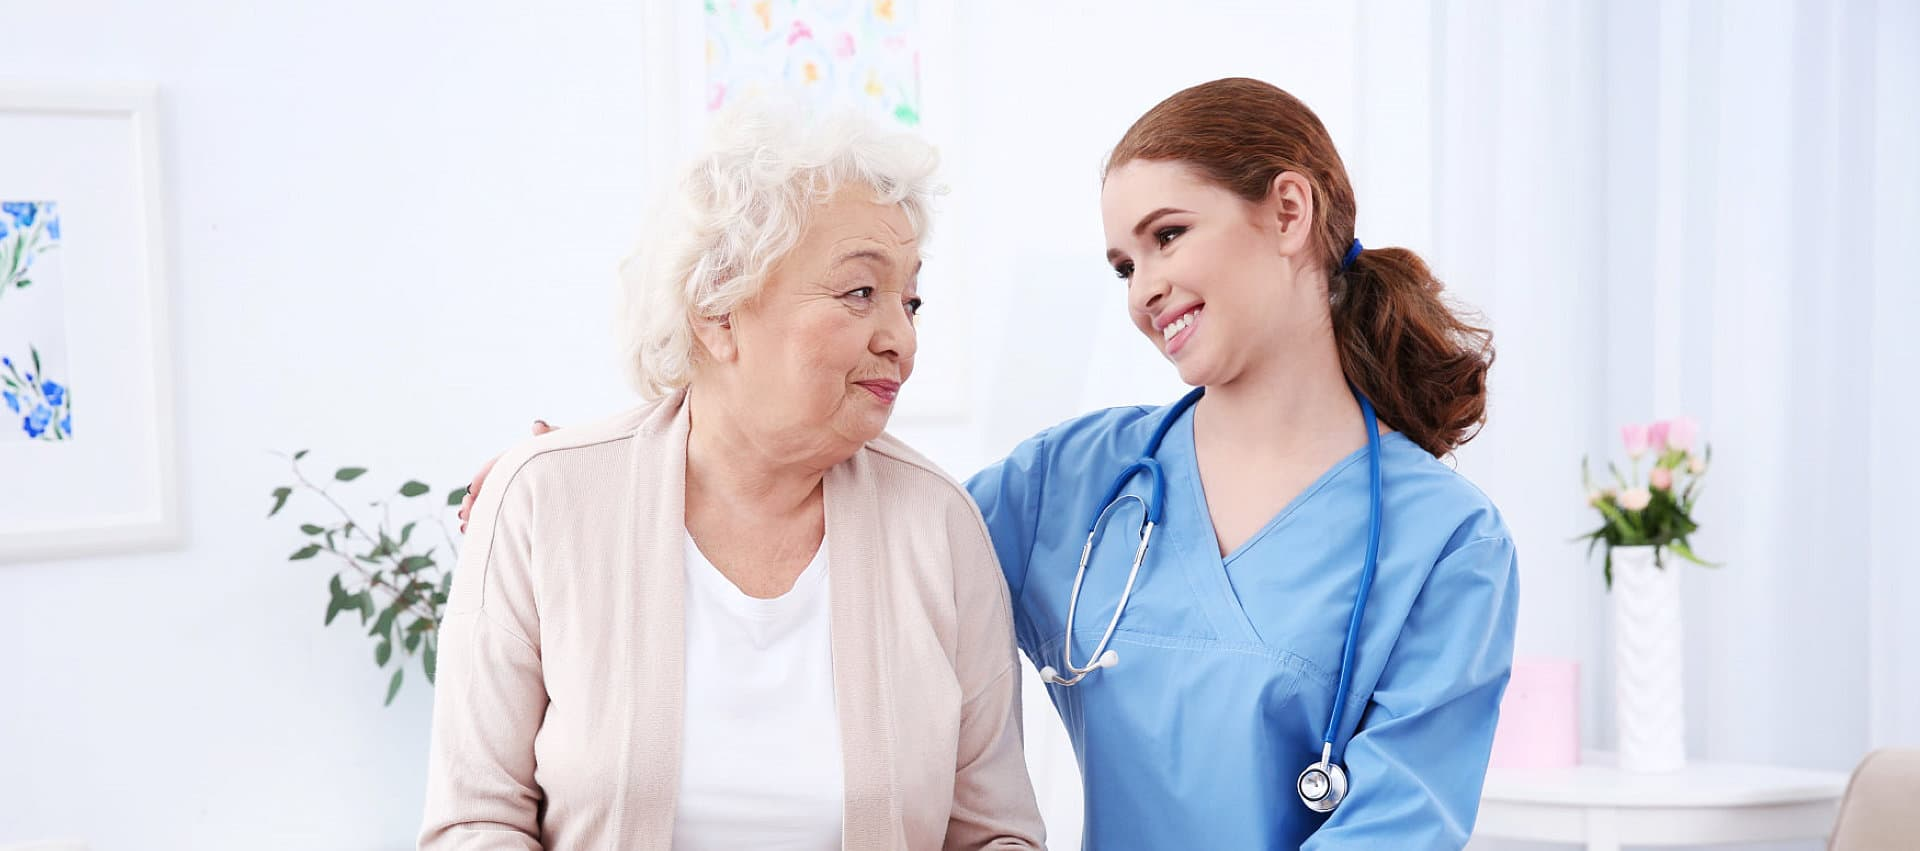 female caregiver with stethoscope with her old woman patient looking to each other